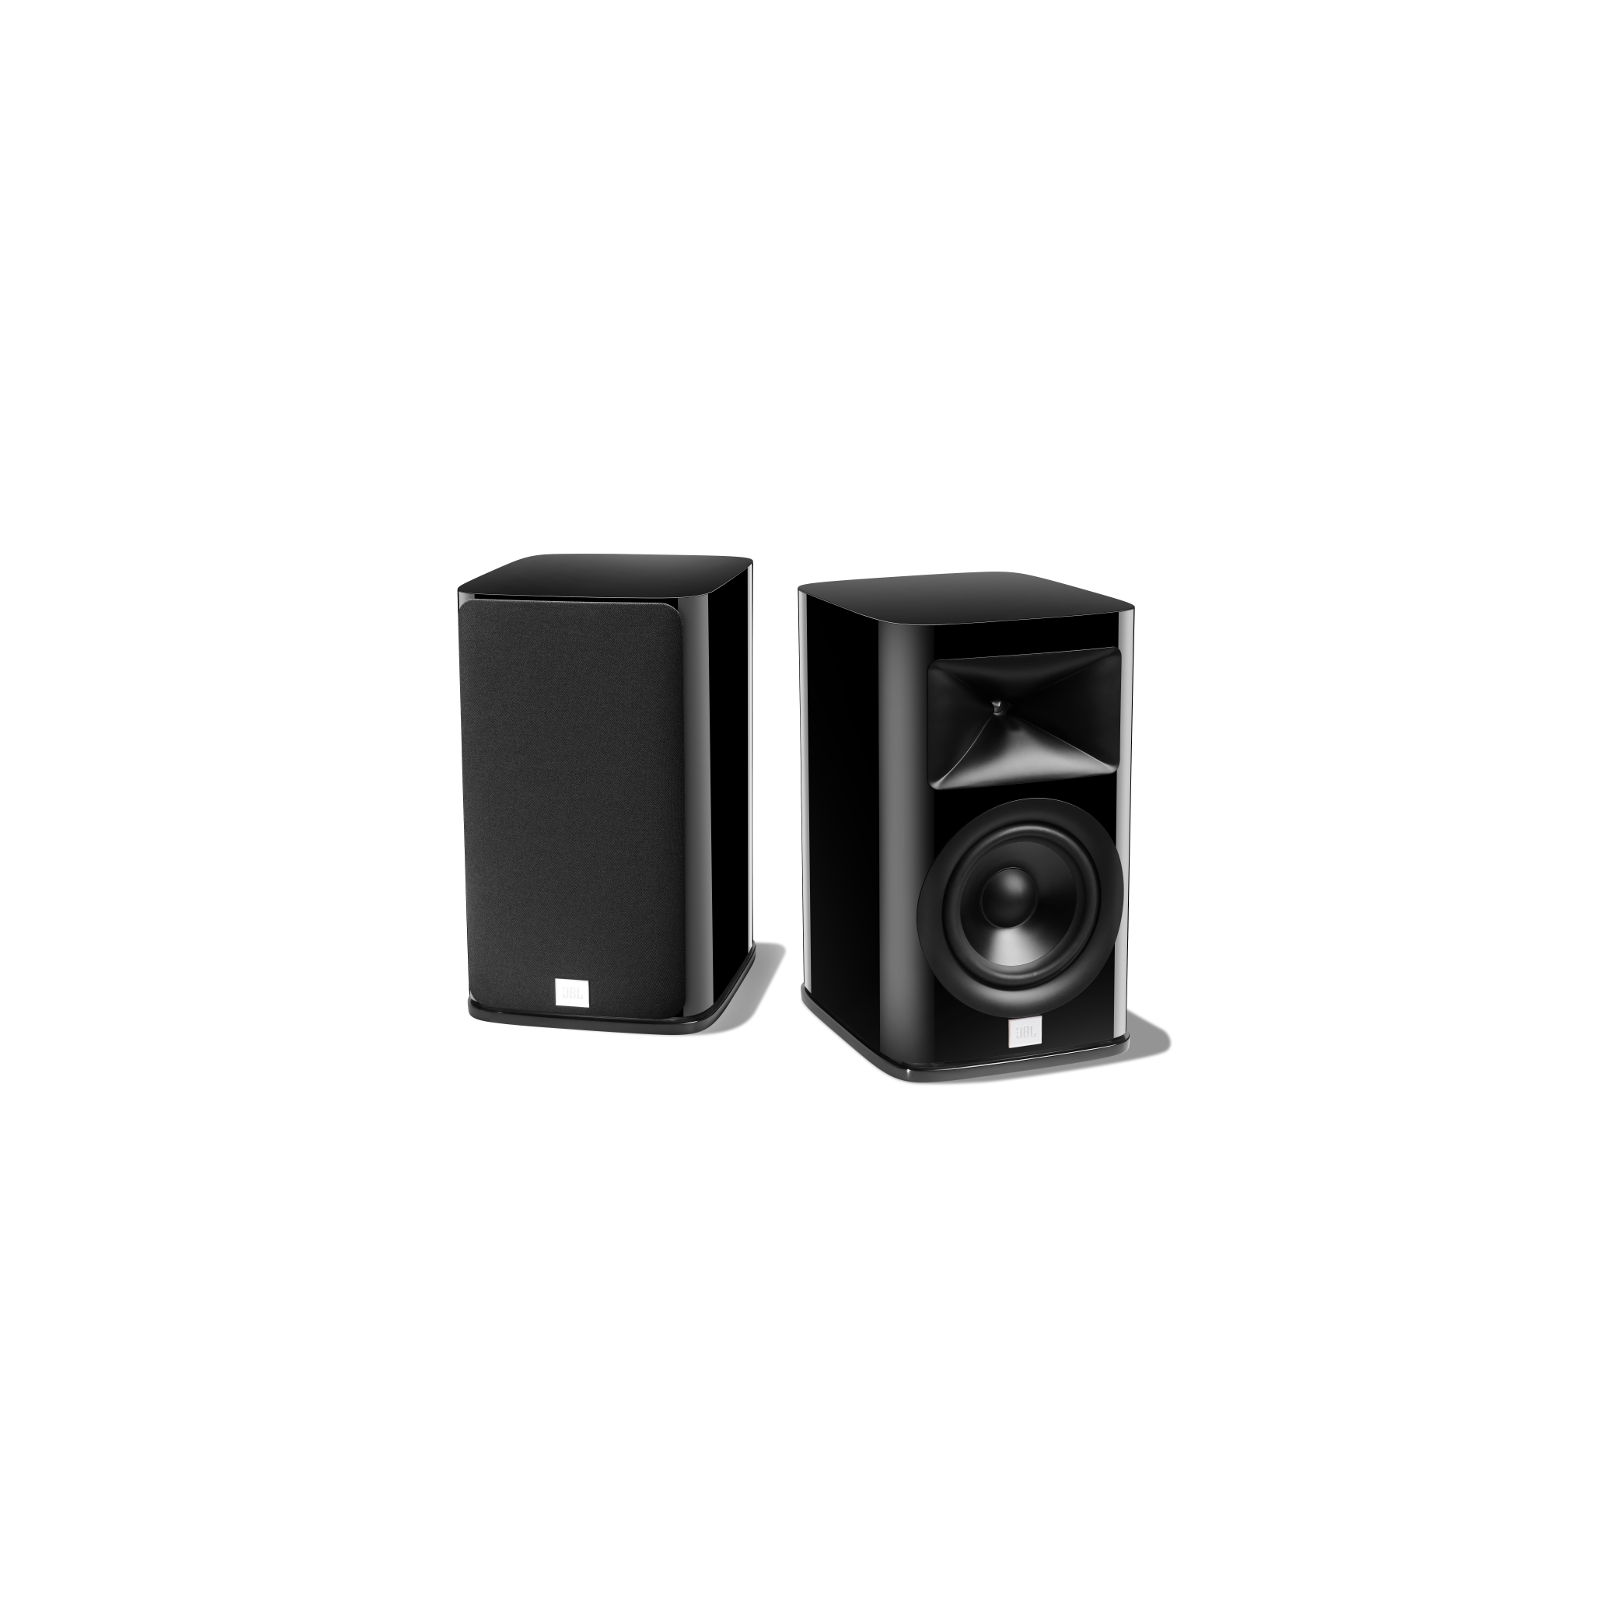 HDI-1600 - Black Gloss - 2-way 6.5-inch (165mm) Bookshelf Loudspeaker - Detailshot 4